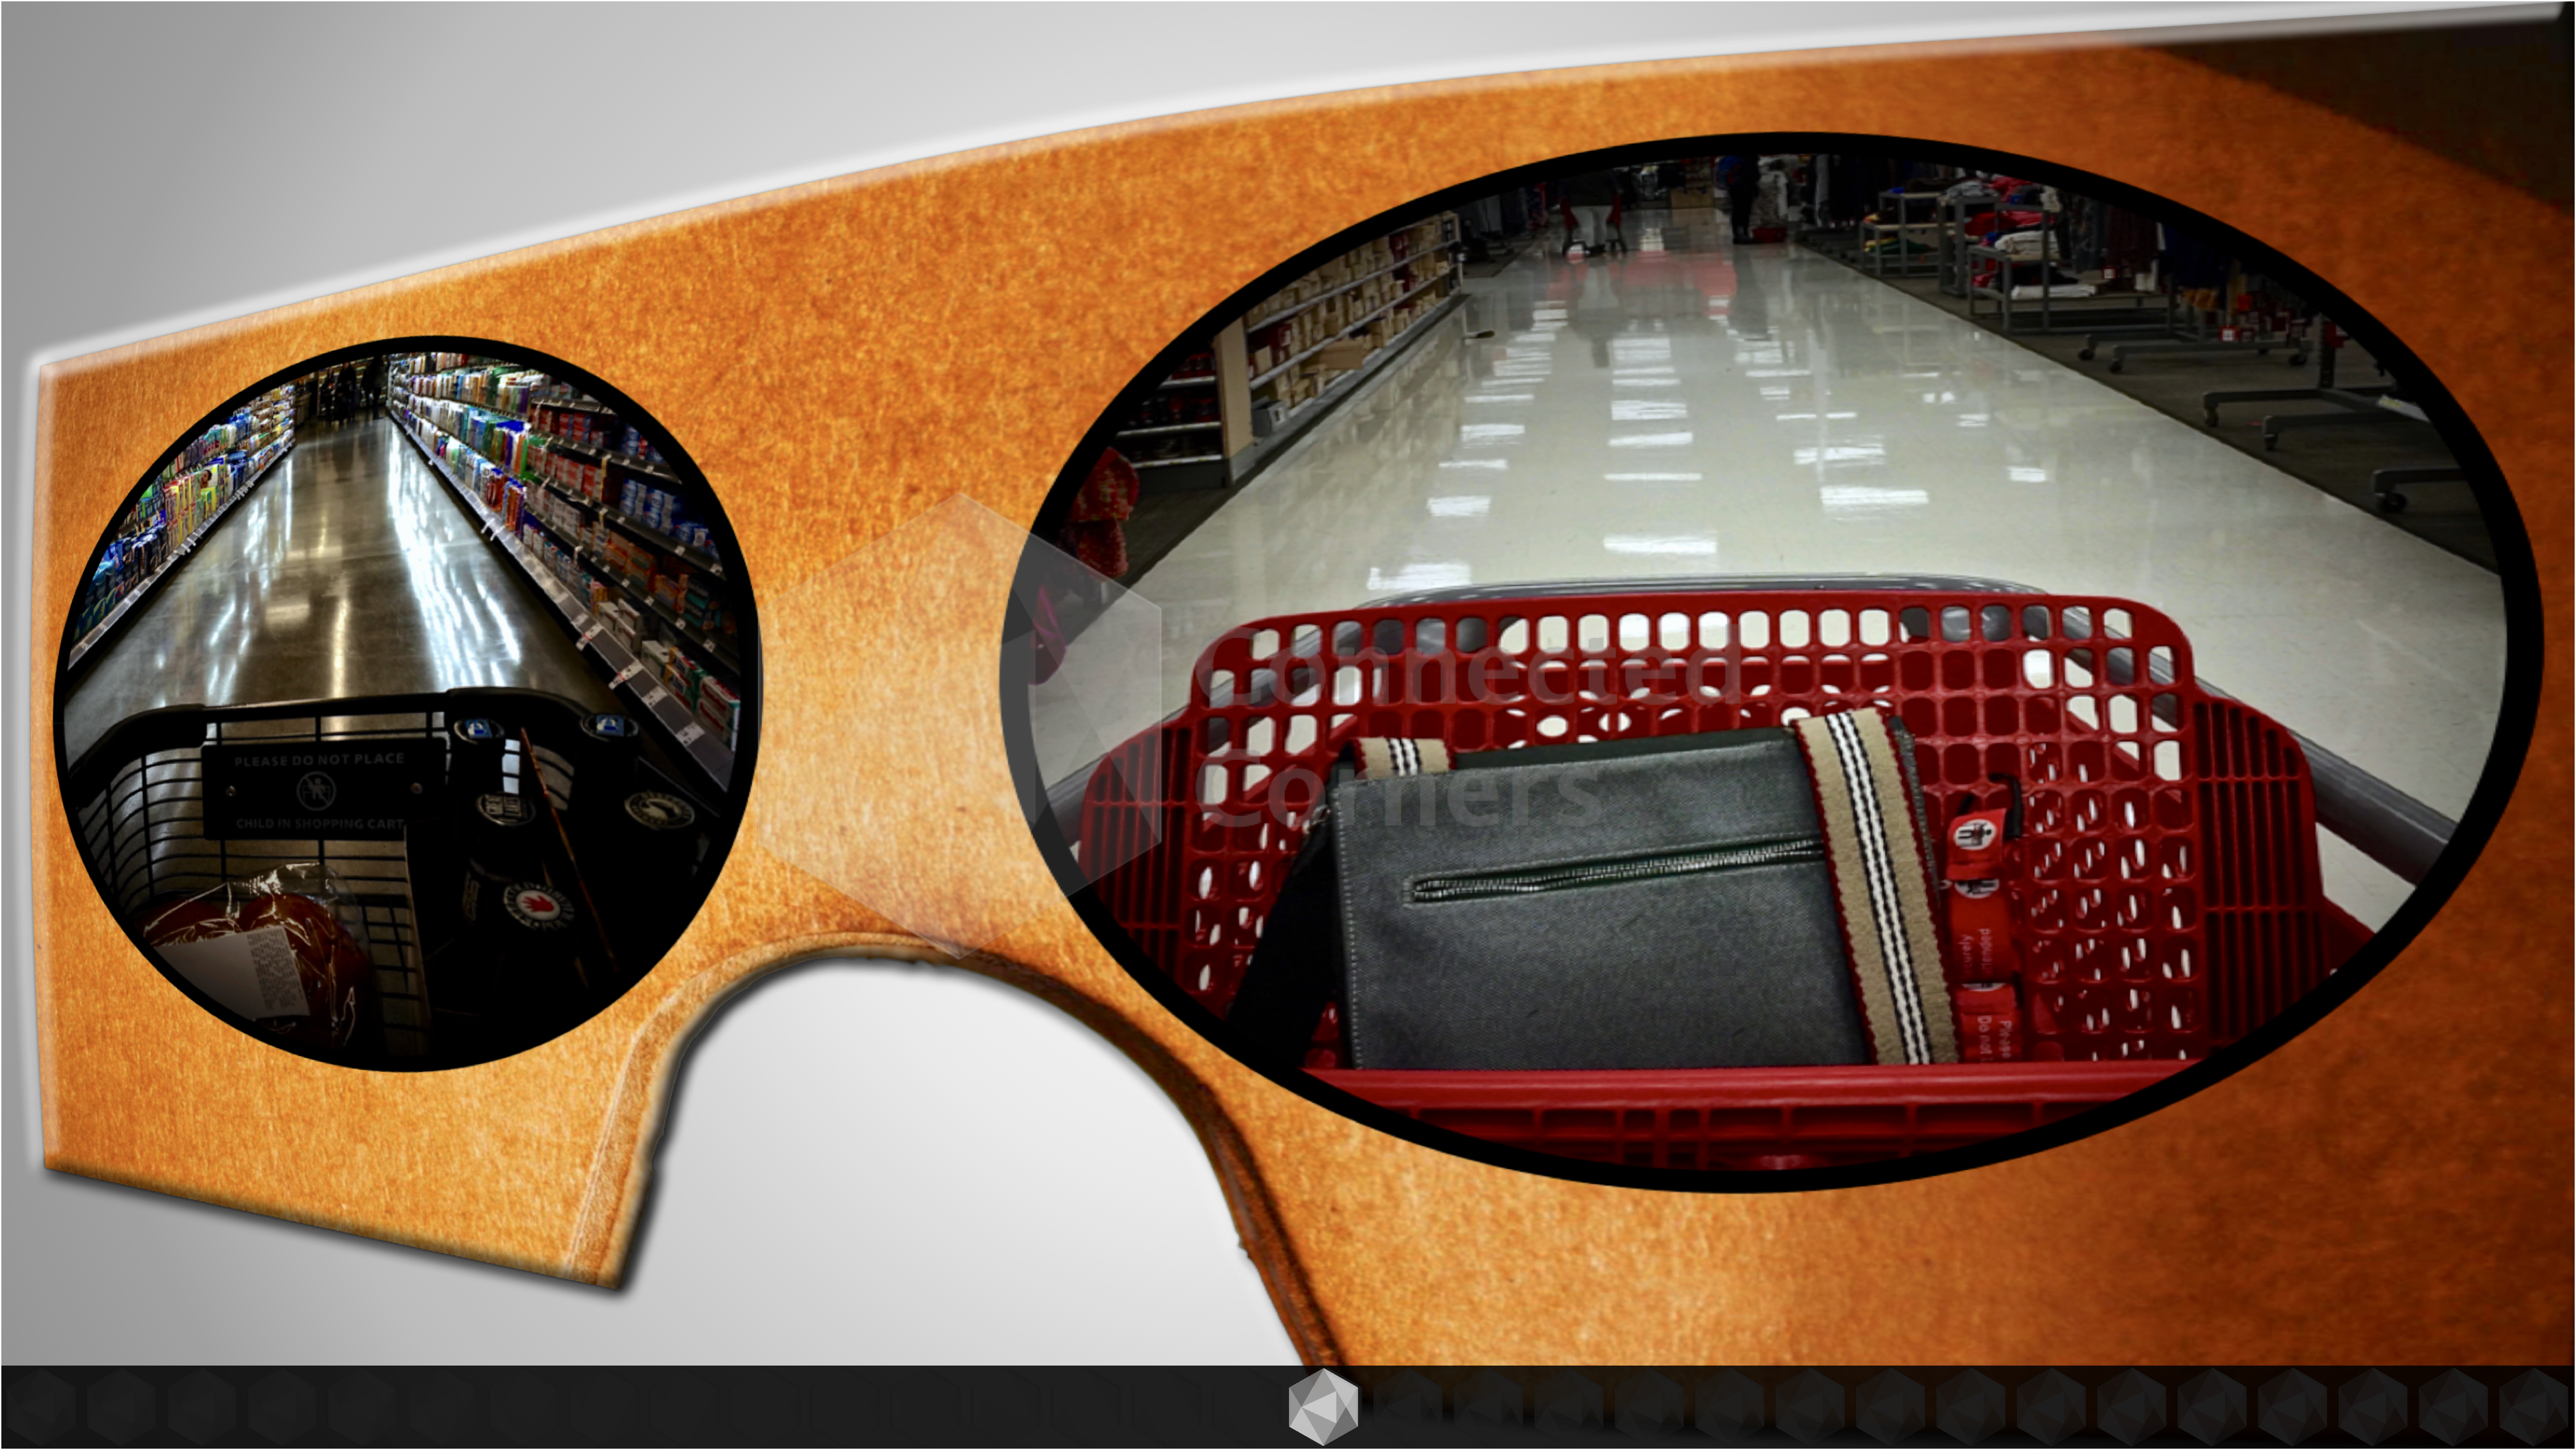 VR AR in building retail experiences - Connected Corners